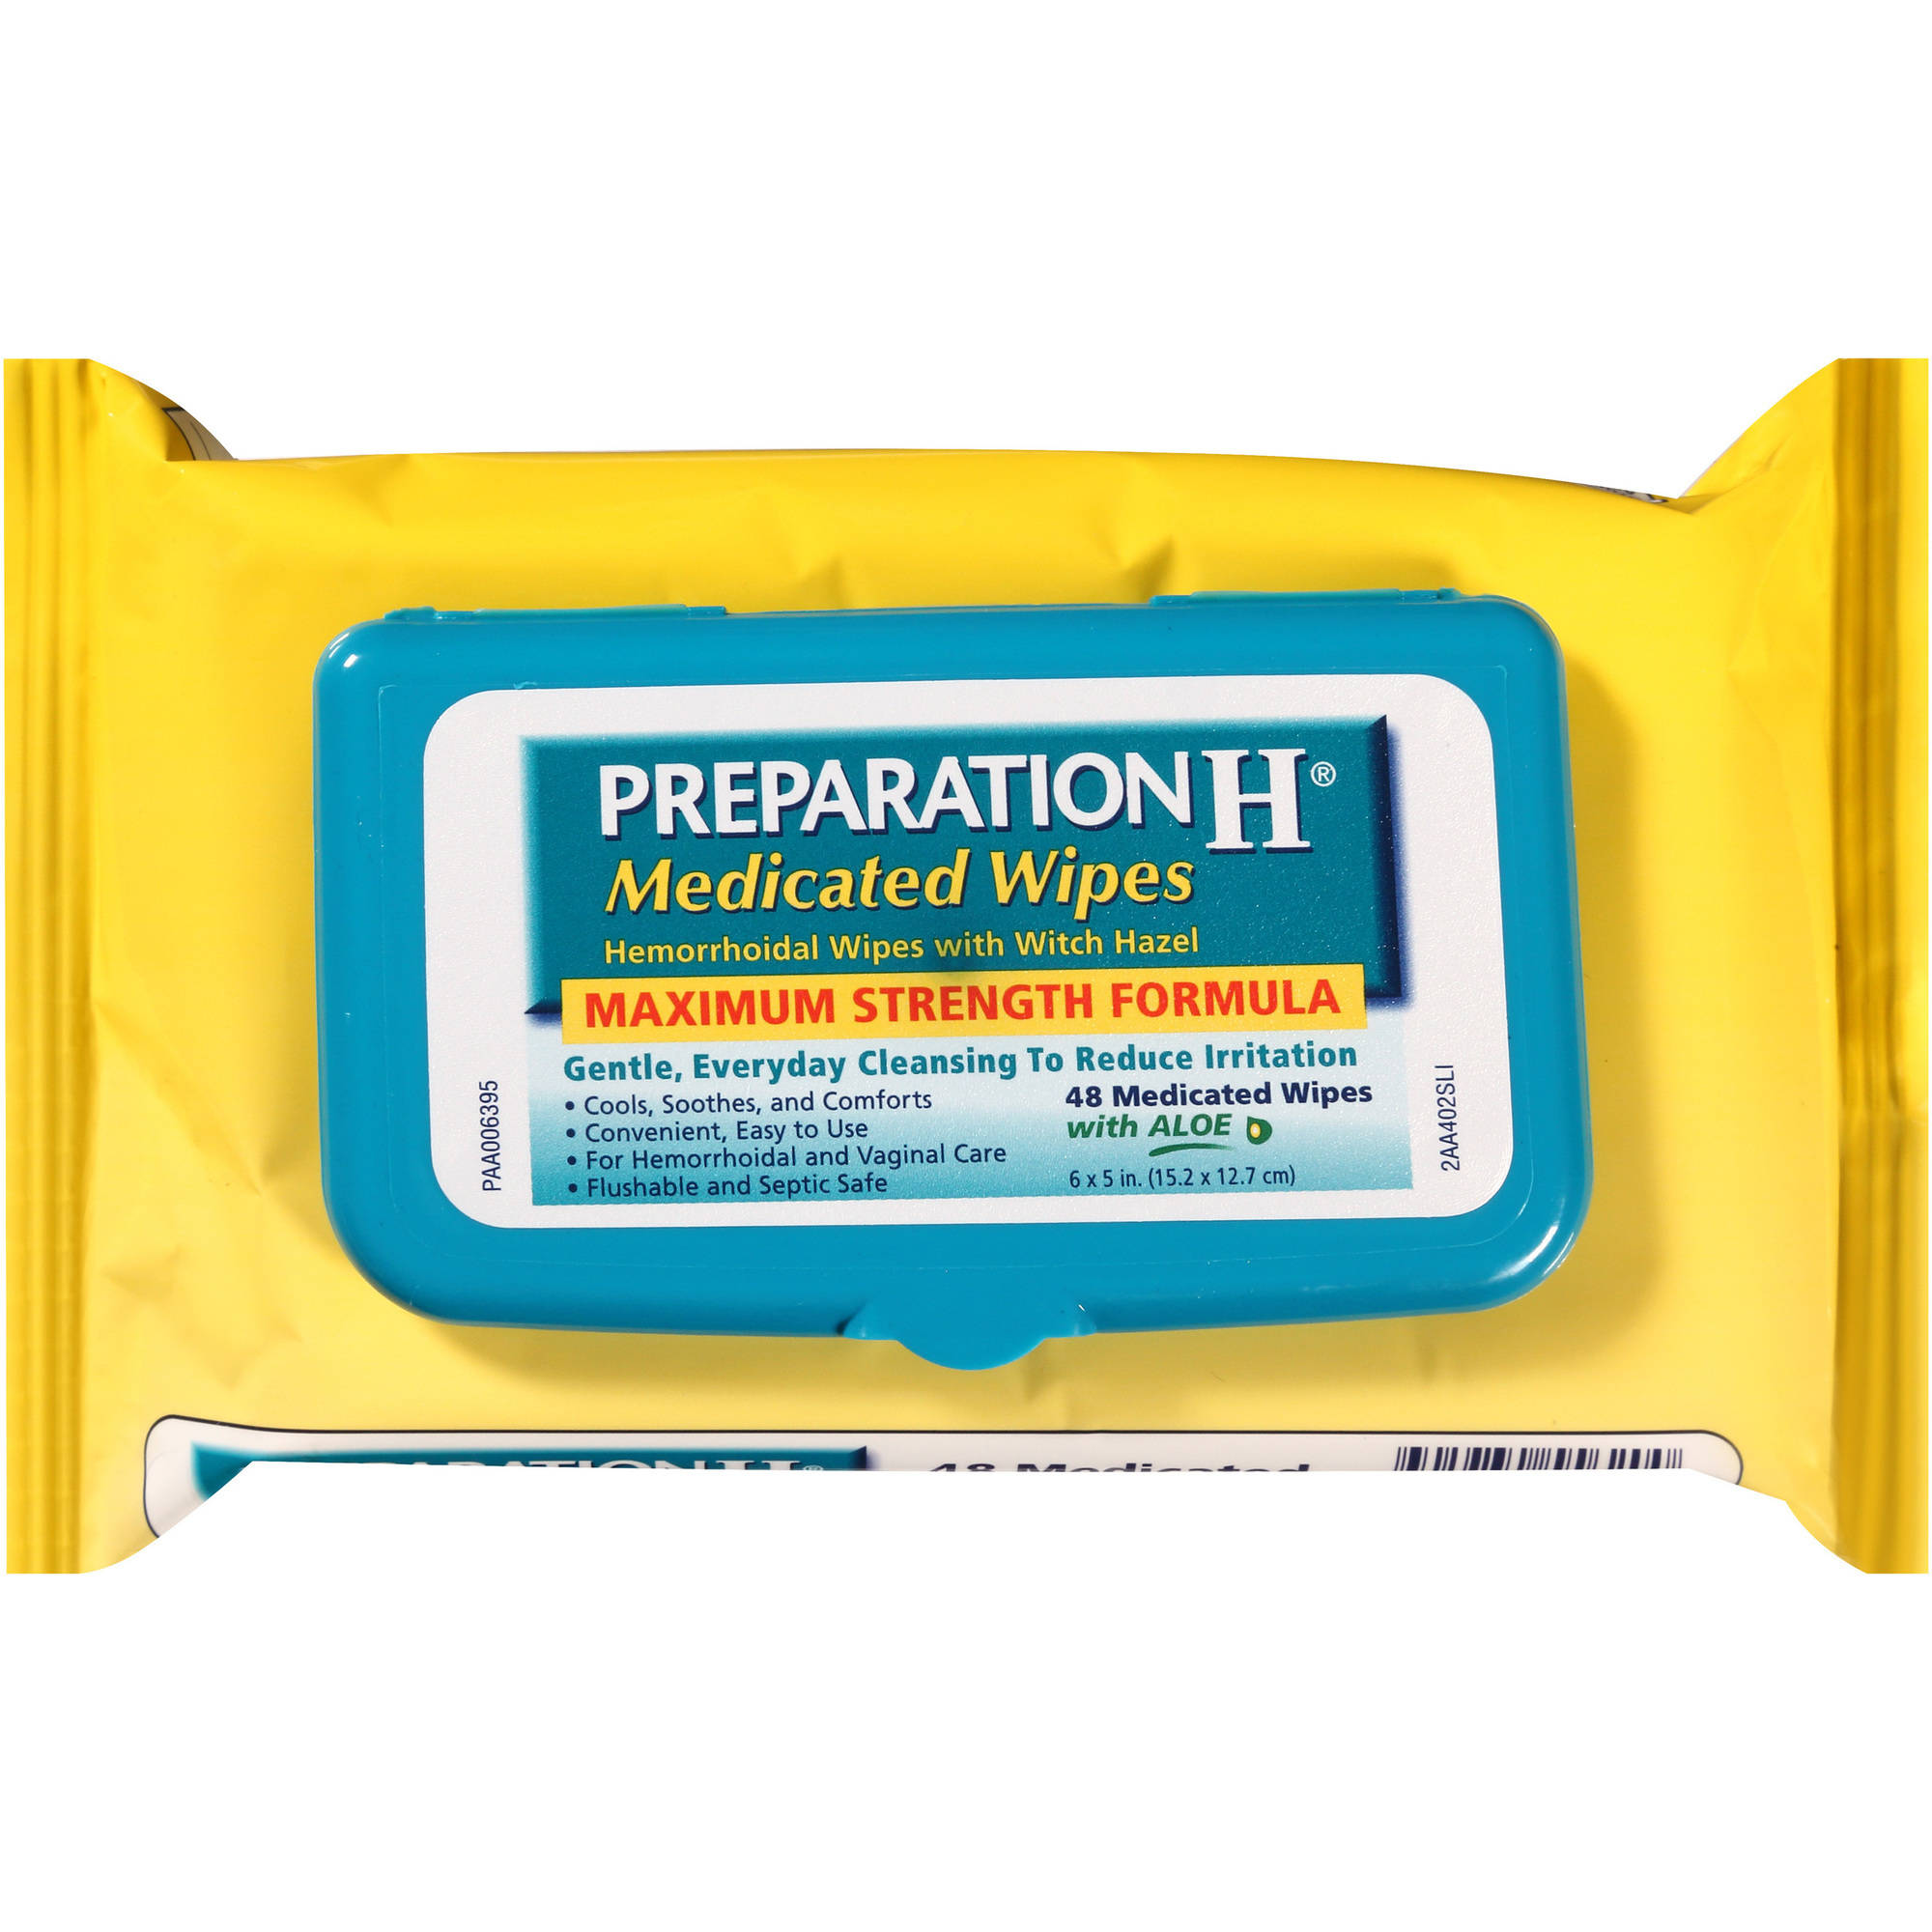 Preparation H Medicated Wipes Hemorrhoidal Wipes with Witch Hazel, 48 count